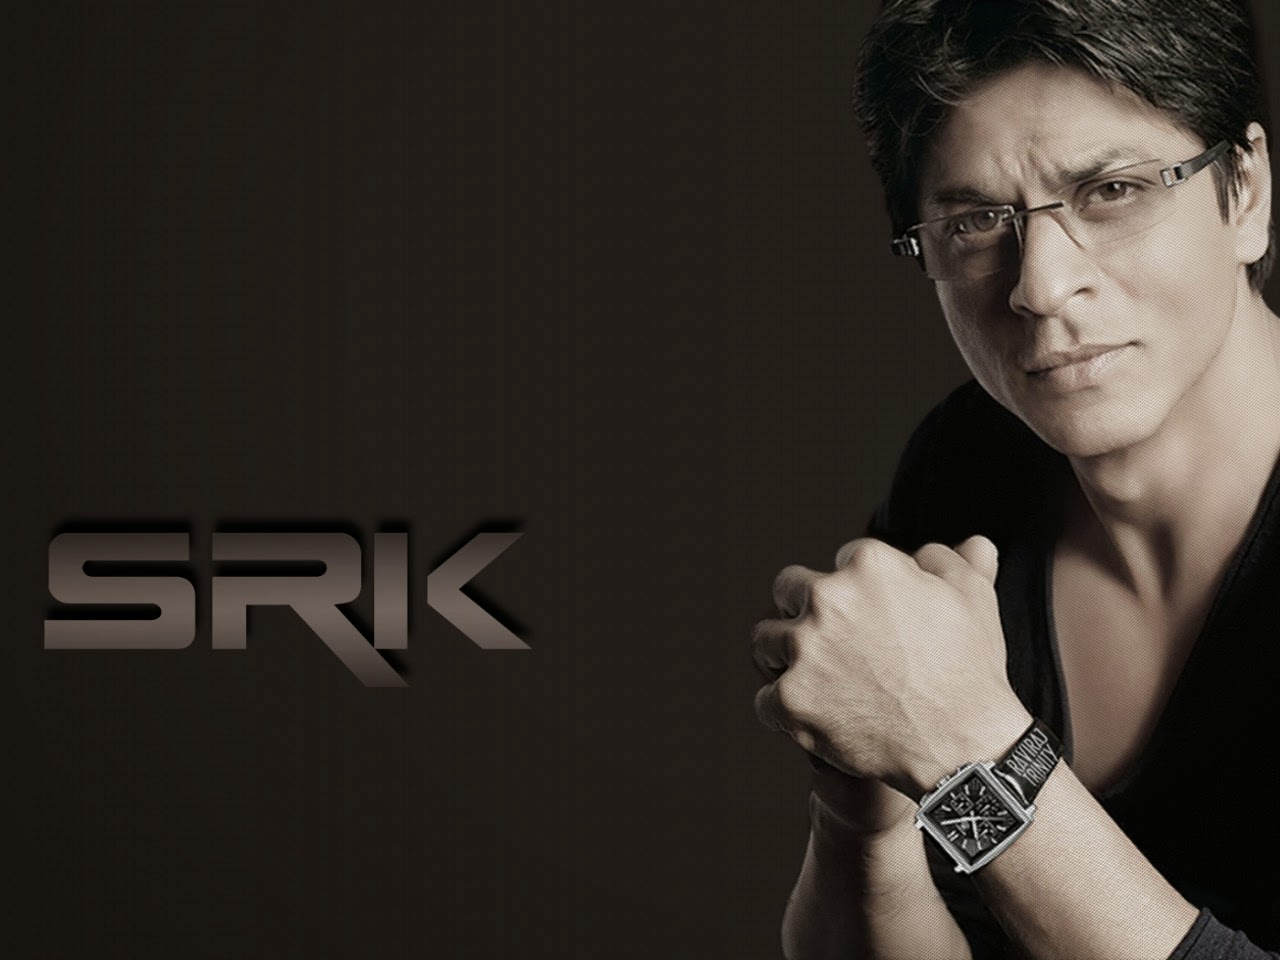 Srk Name Wallpaper